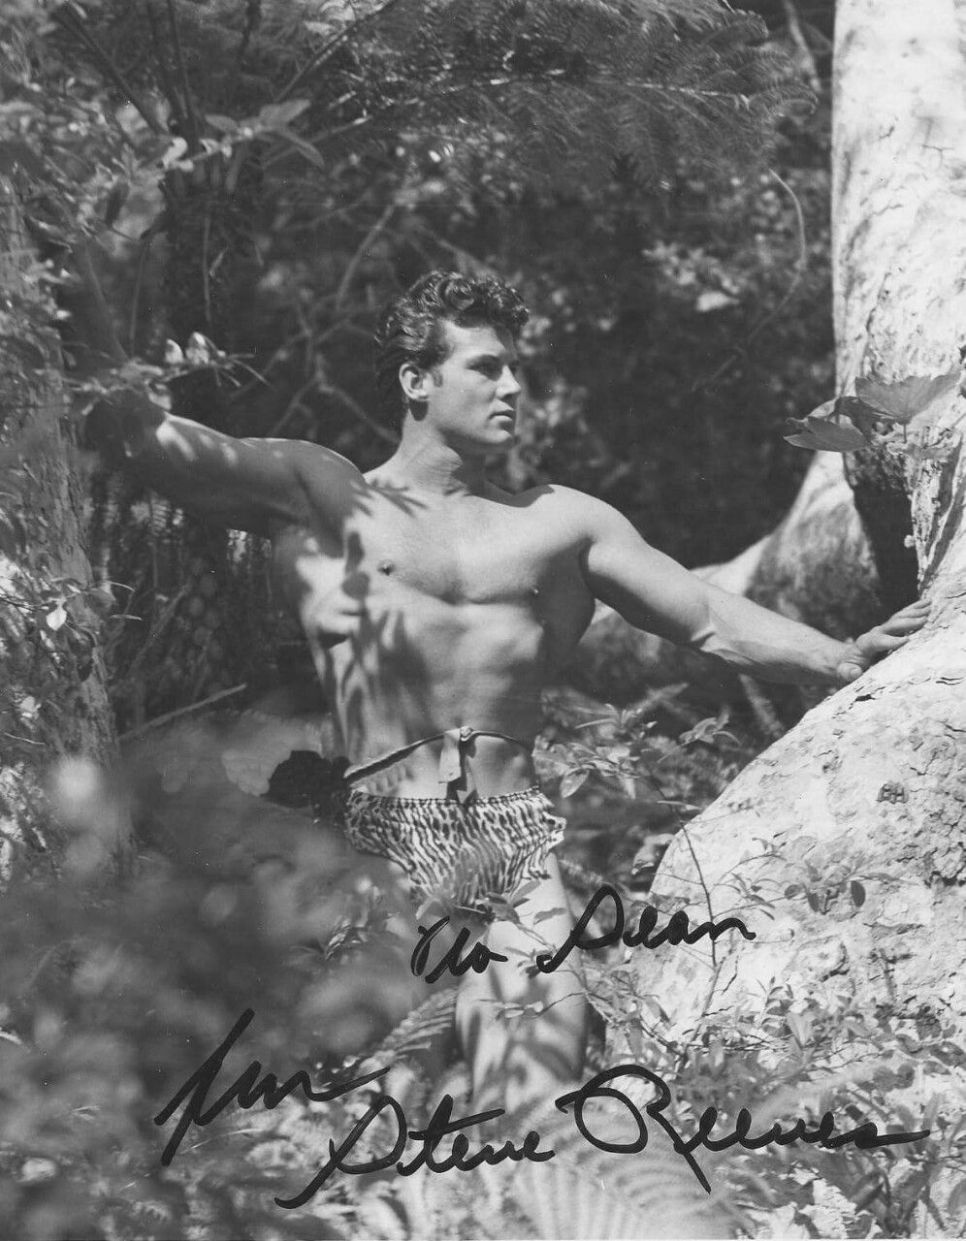 Steve Reeves with Autograph